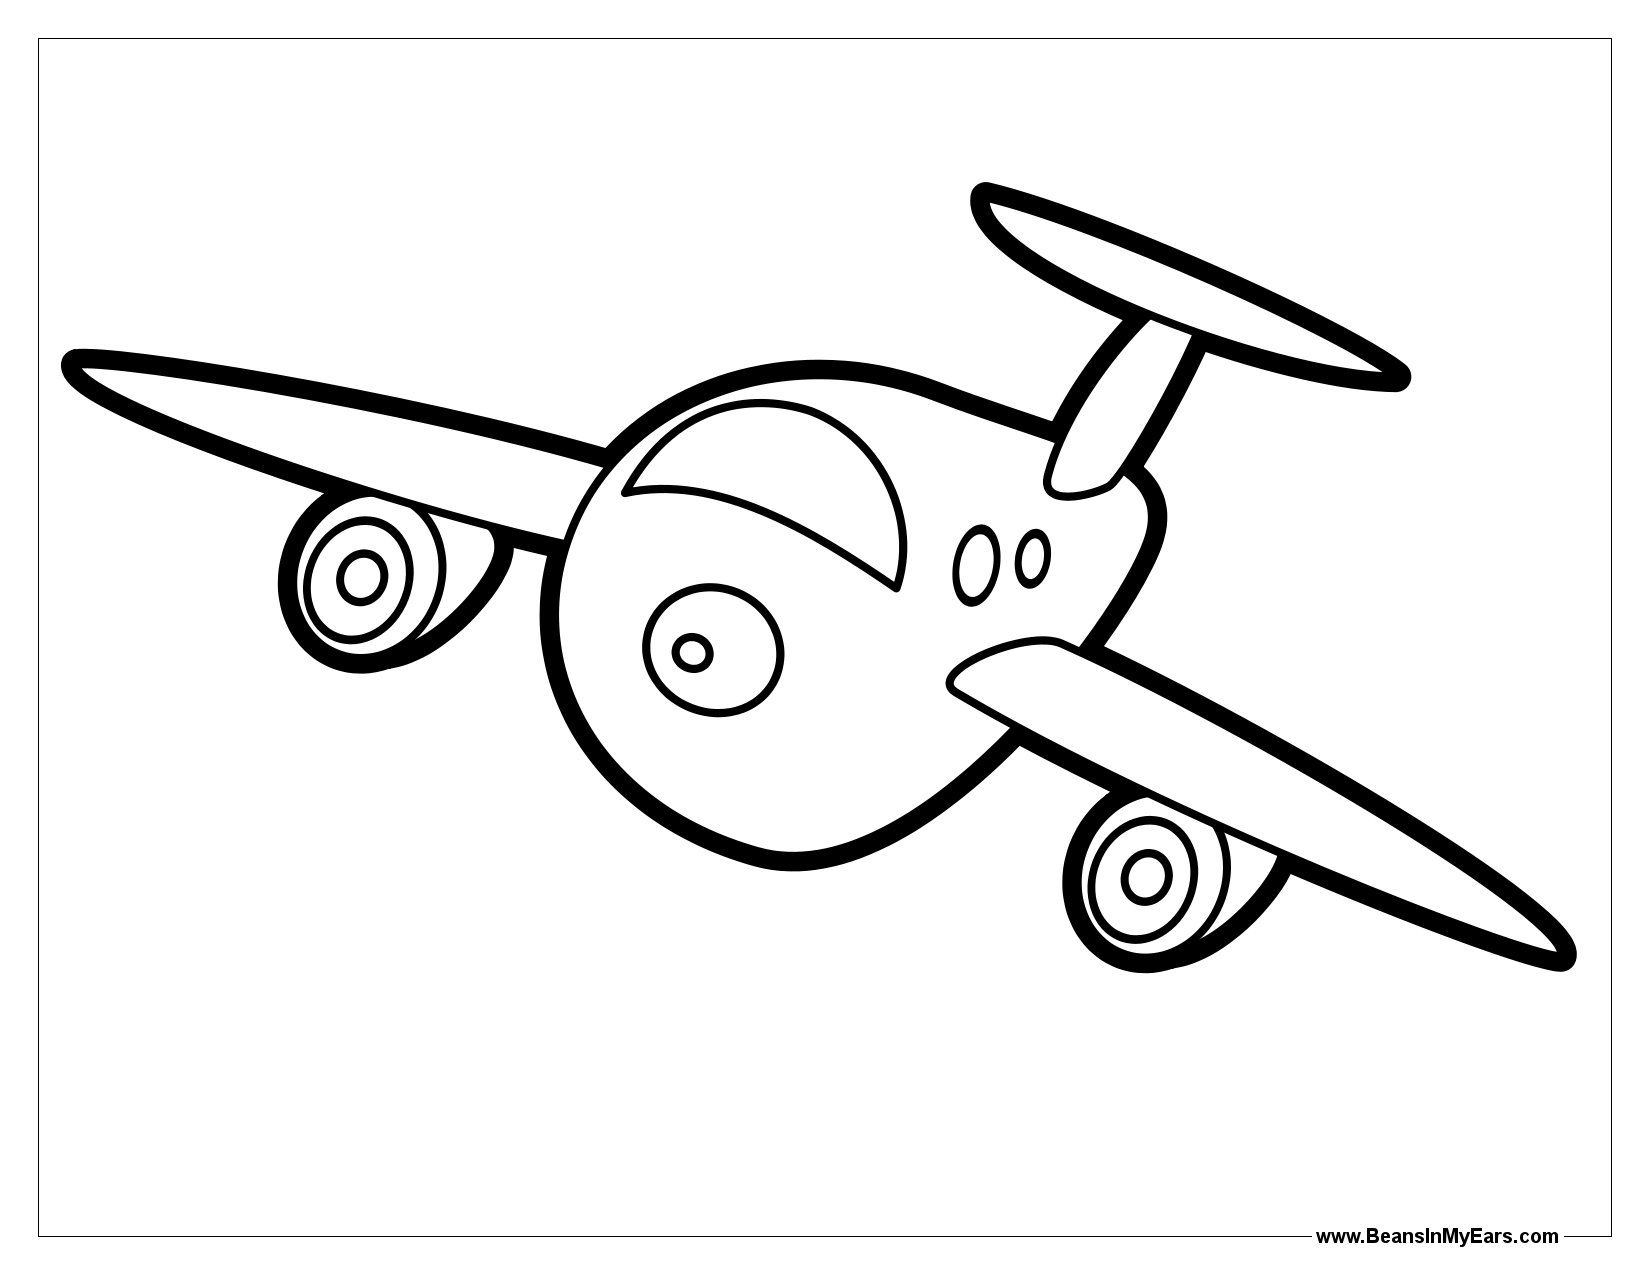 Plane coloring page for toddlers | Airplane Coloring Pages ...